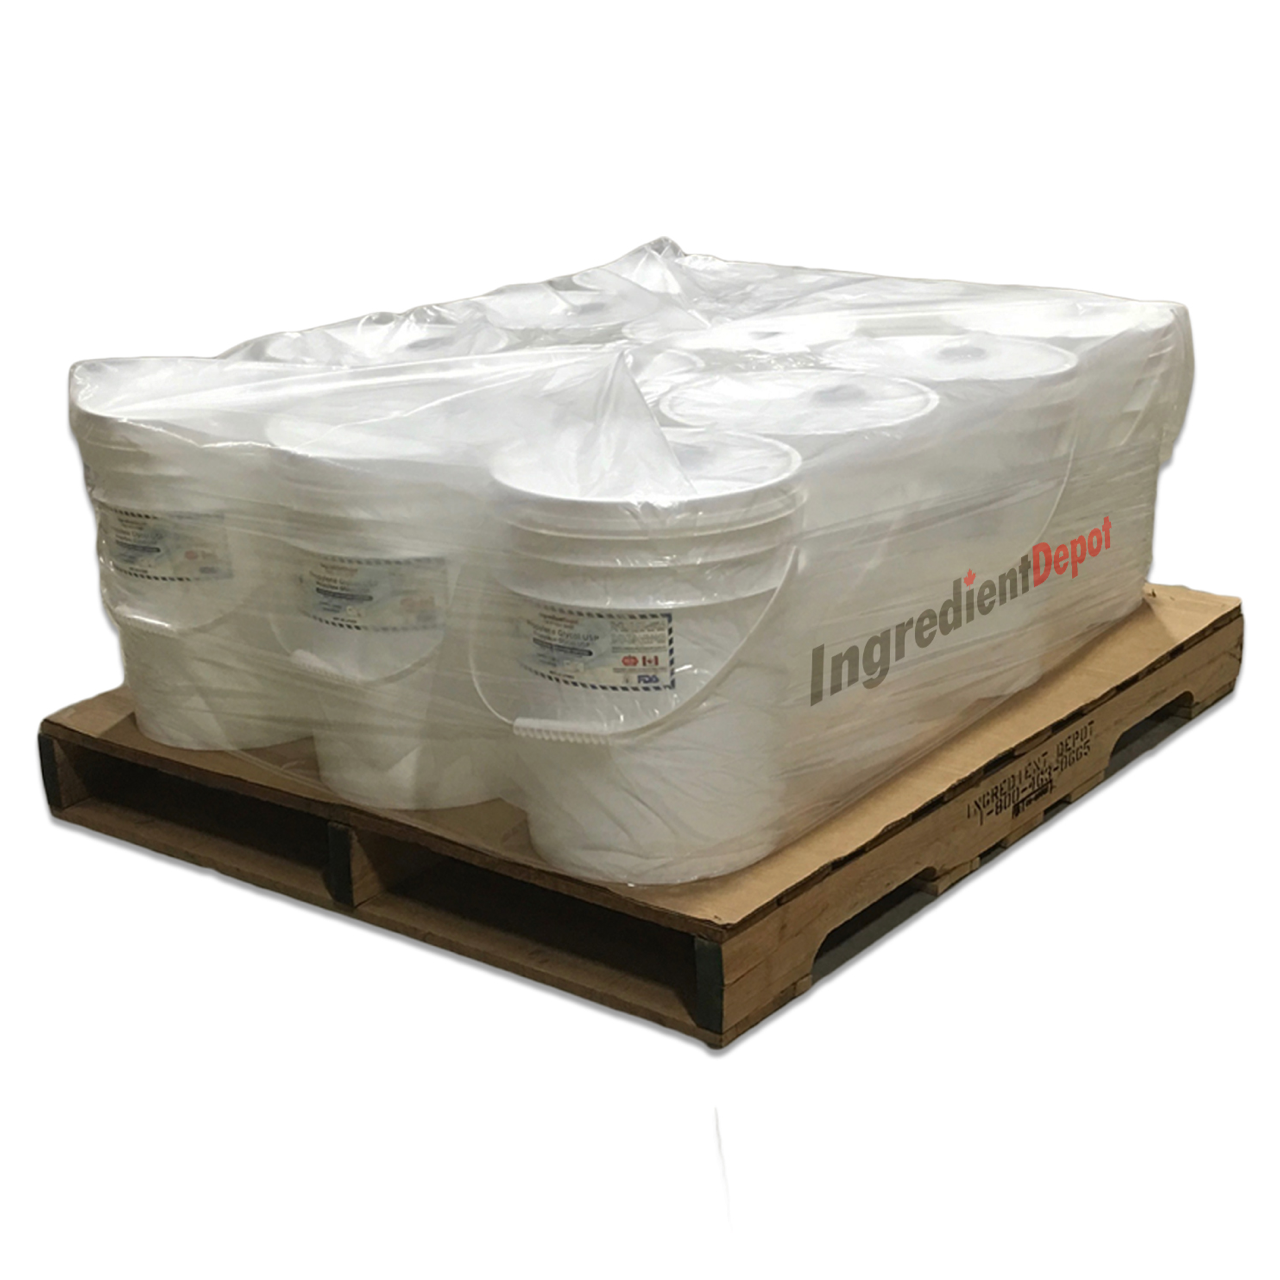 Propylene Glycol North American PG 99.9% USP/EP Food Grade | 12 x 20 litres on a Pallet